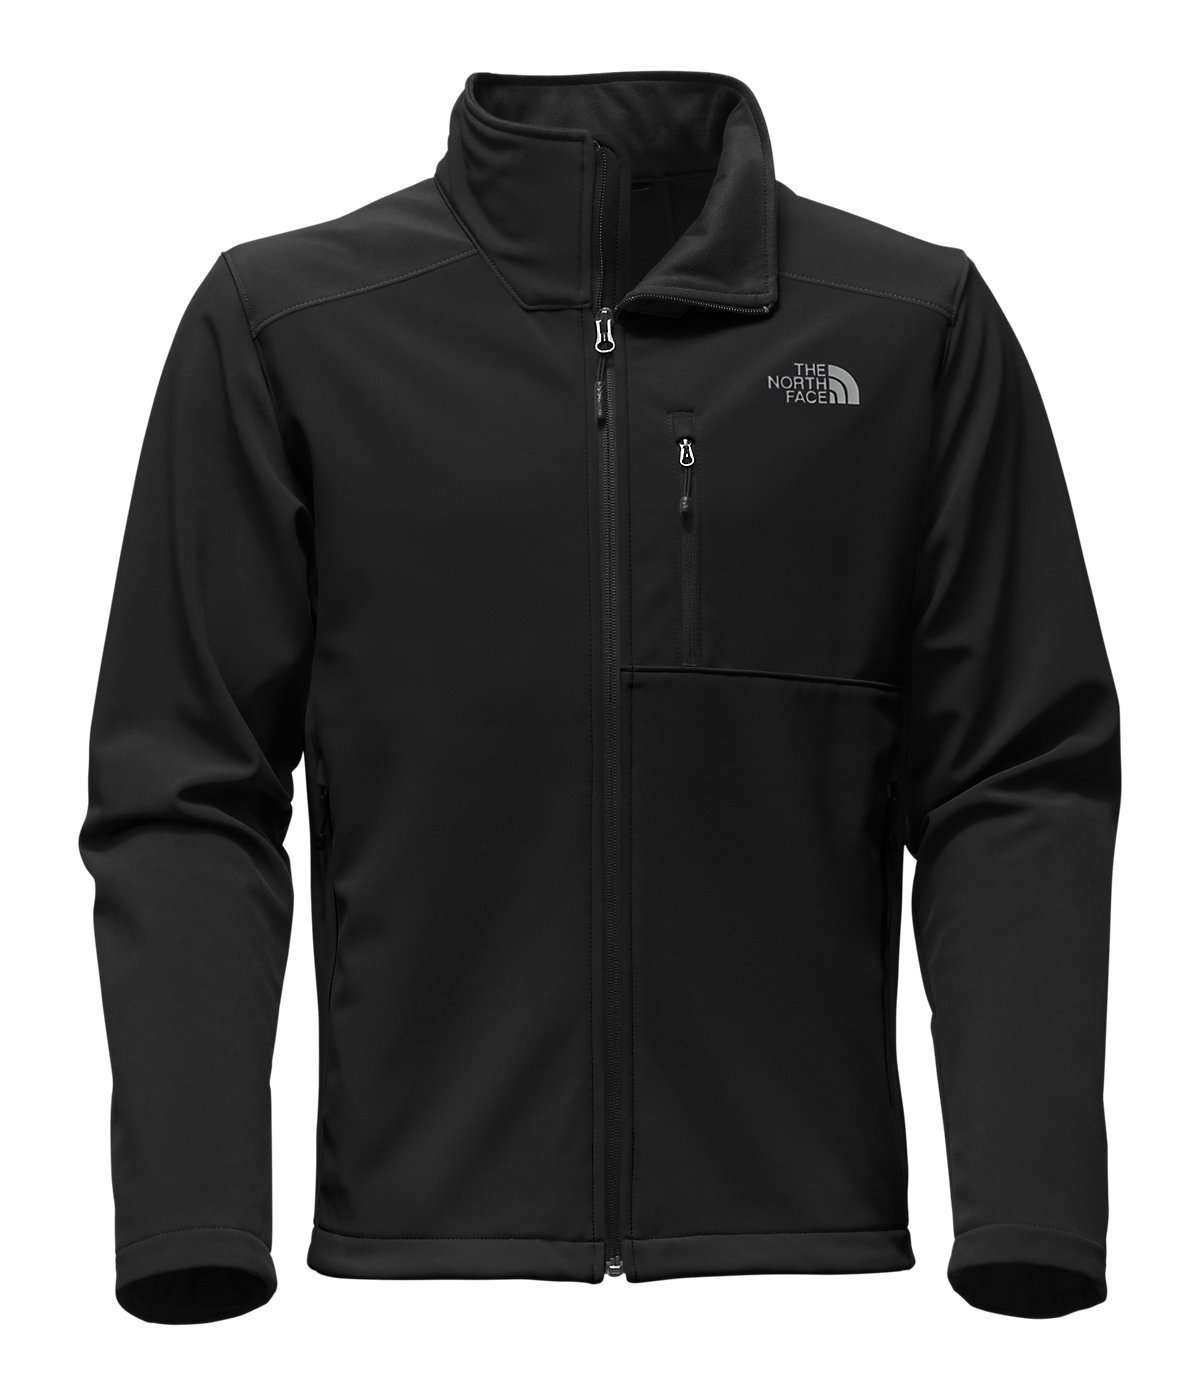 7ba087529 The North Face Mens Apex Bionic 2 Jacket - TNF Black